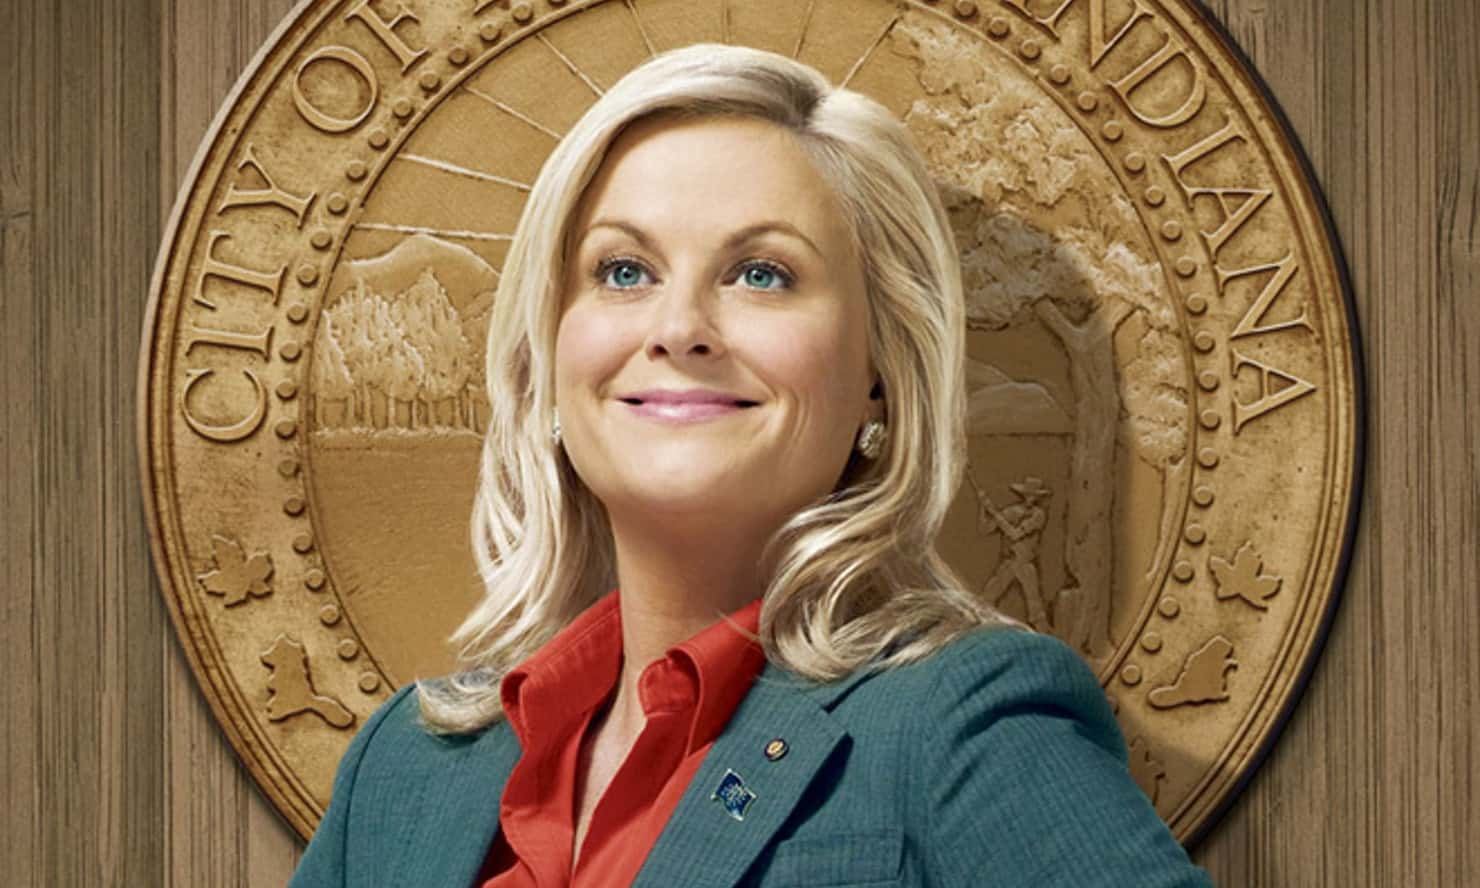 Amy Poehler, smiling, as Leslie Knope in Parks and Rec